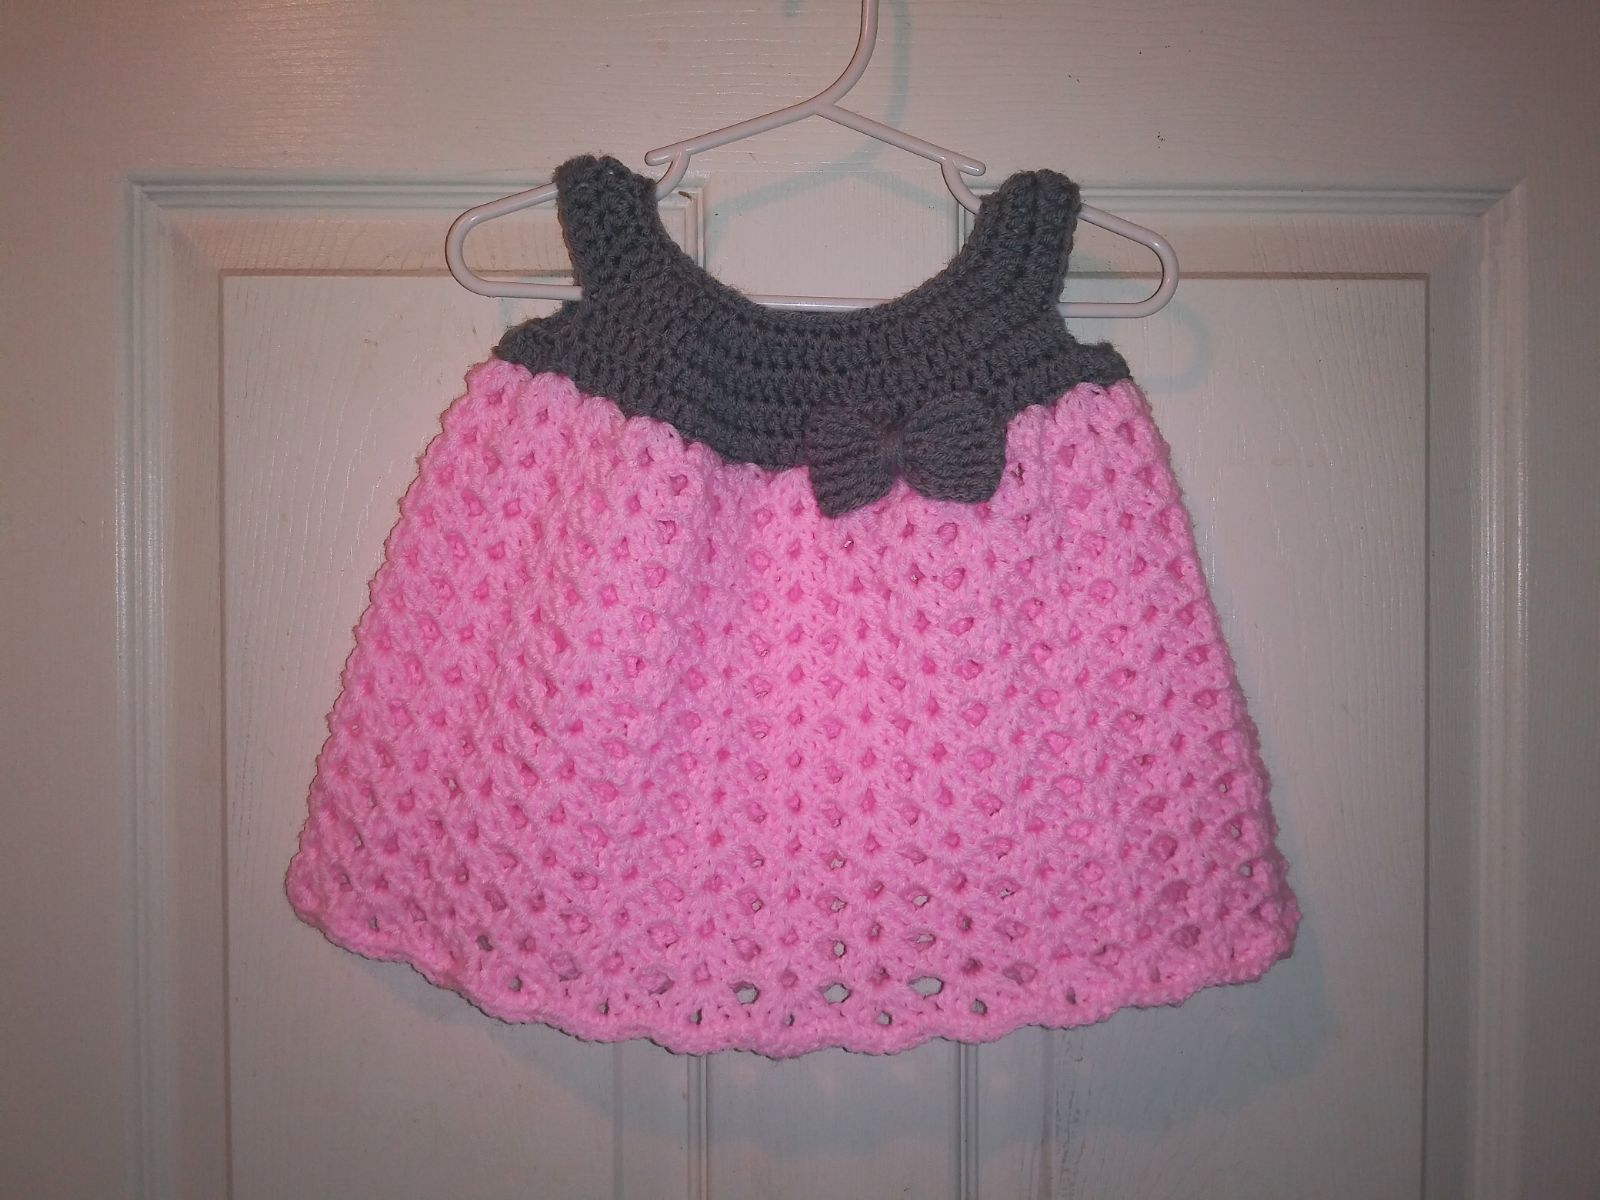 Handmade Crochet Baby Dress